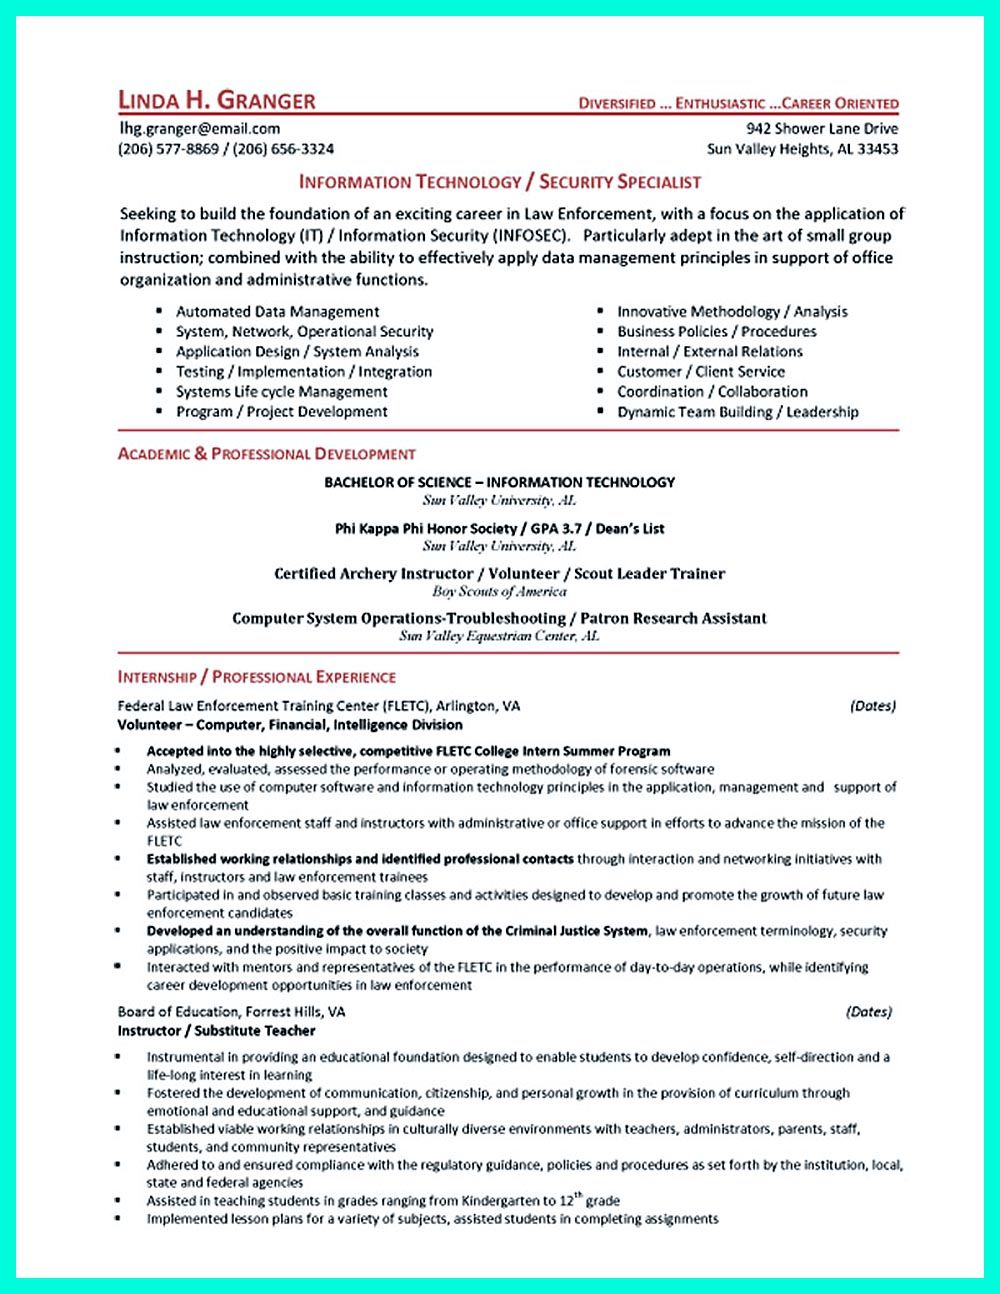 Attractive Cyber Security Resume Must Be Well Created To Get The Job Position As What  You Want In Network Security Resume